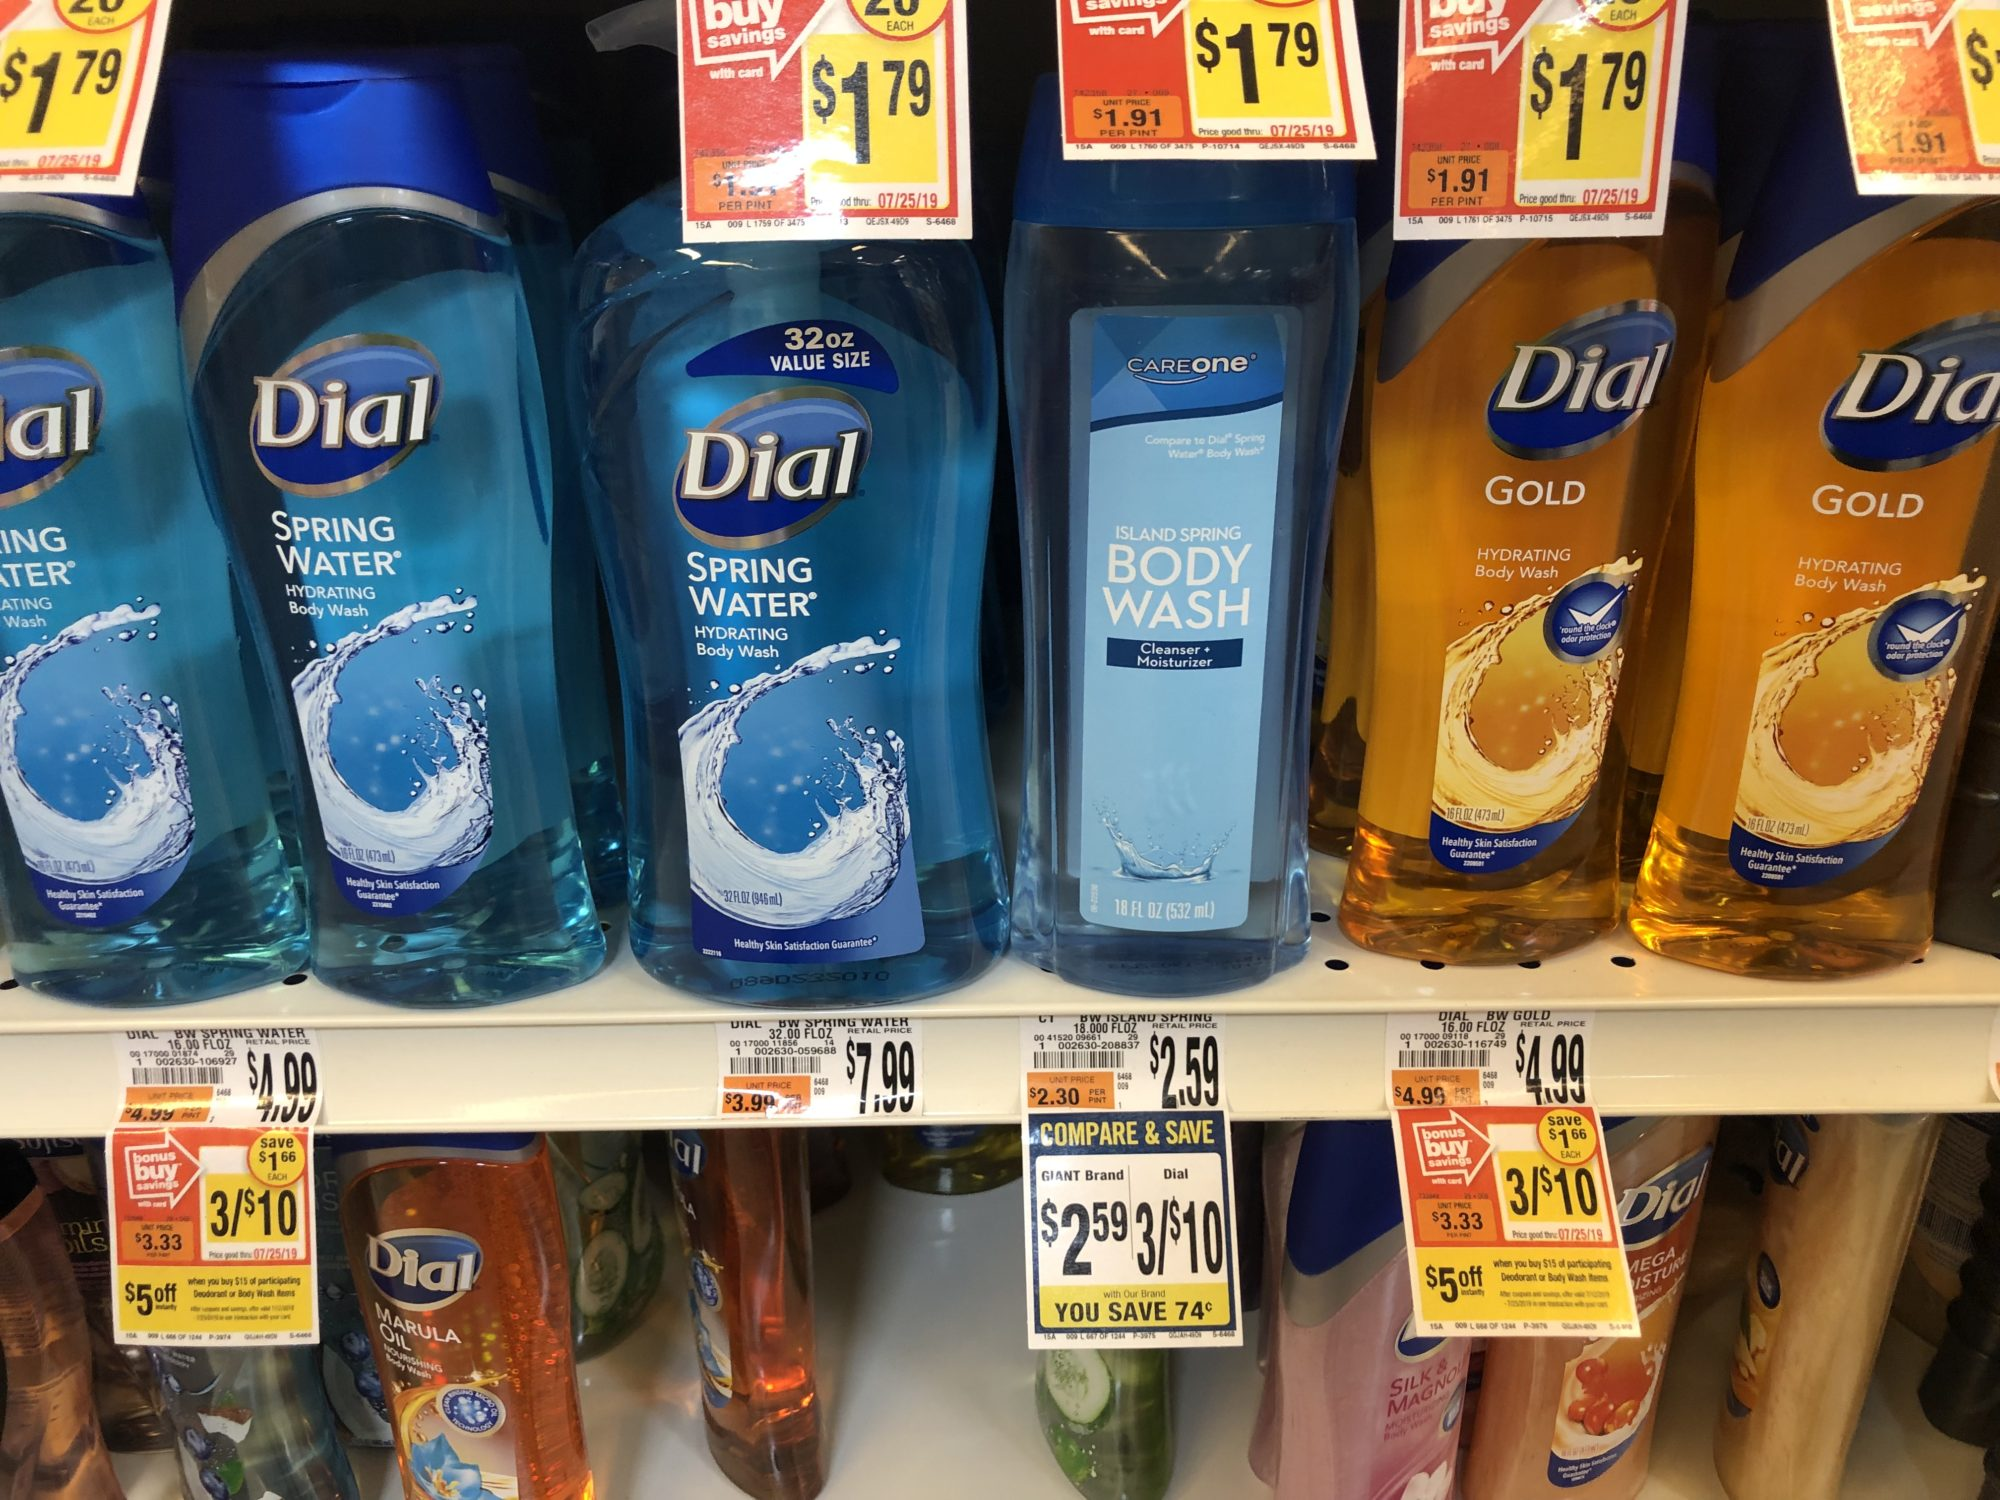 Giant: Dial Body Wash Just $1.28 Each Thru 7/18!